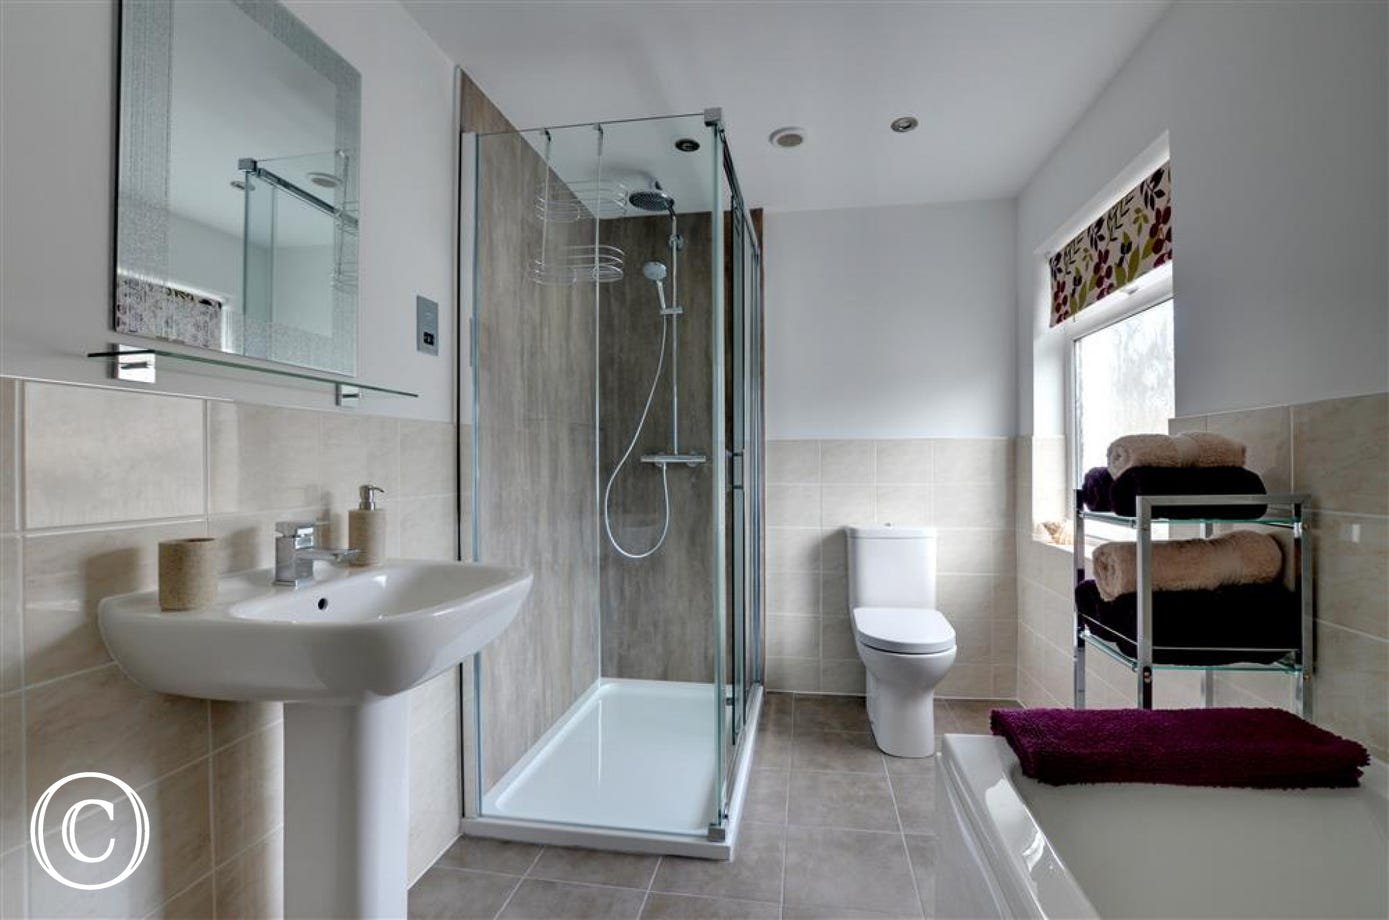 Spacious modern family bathroom with separate shower